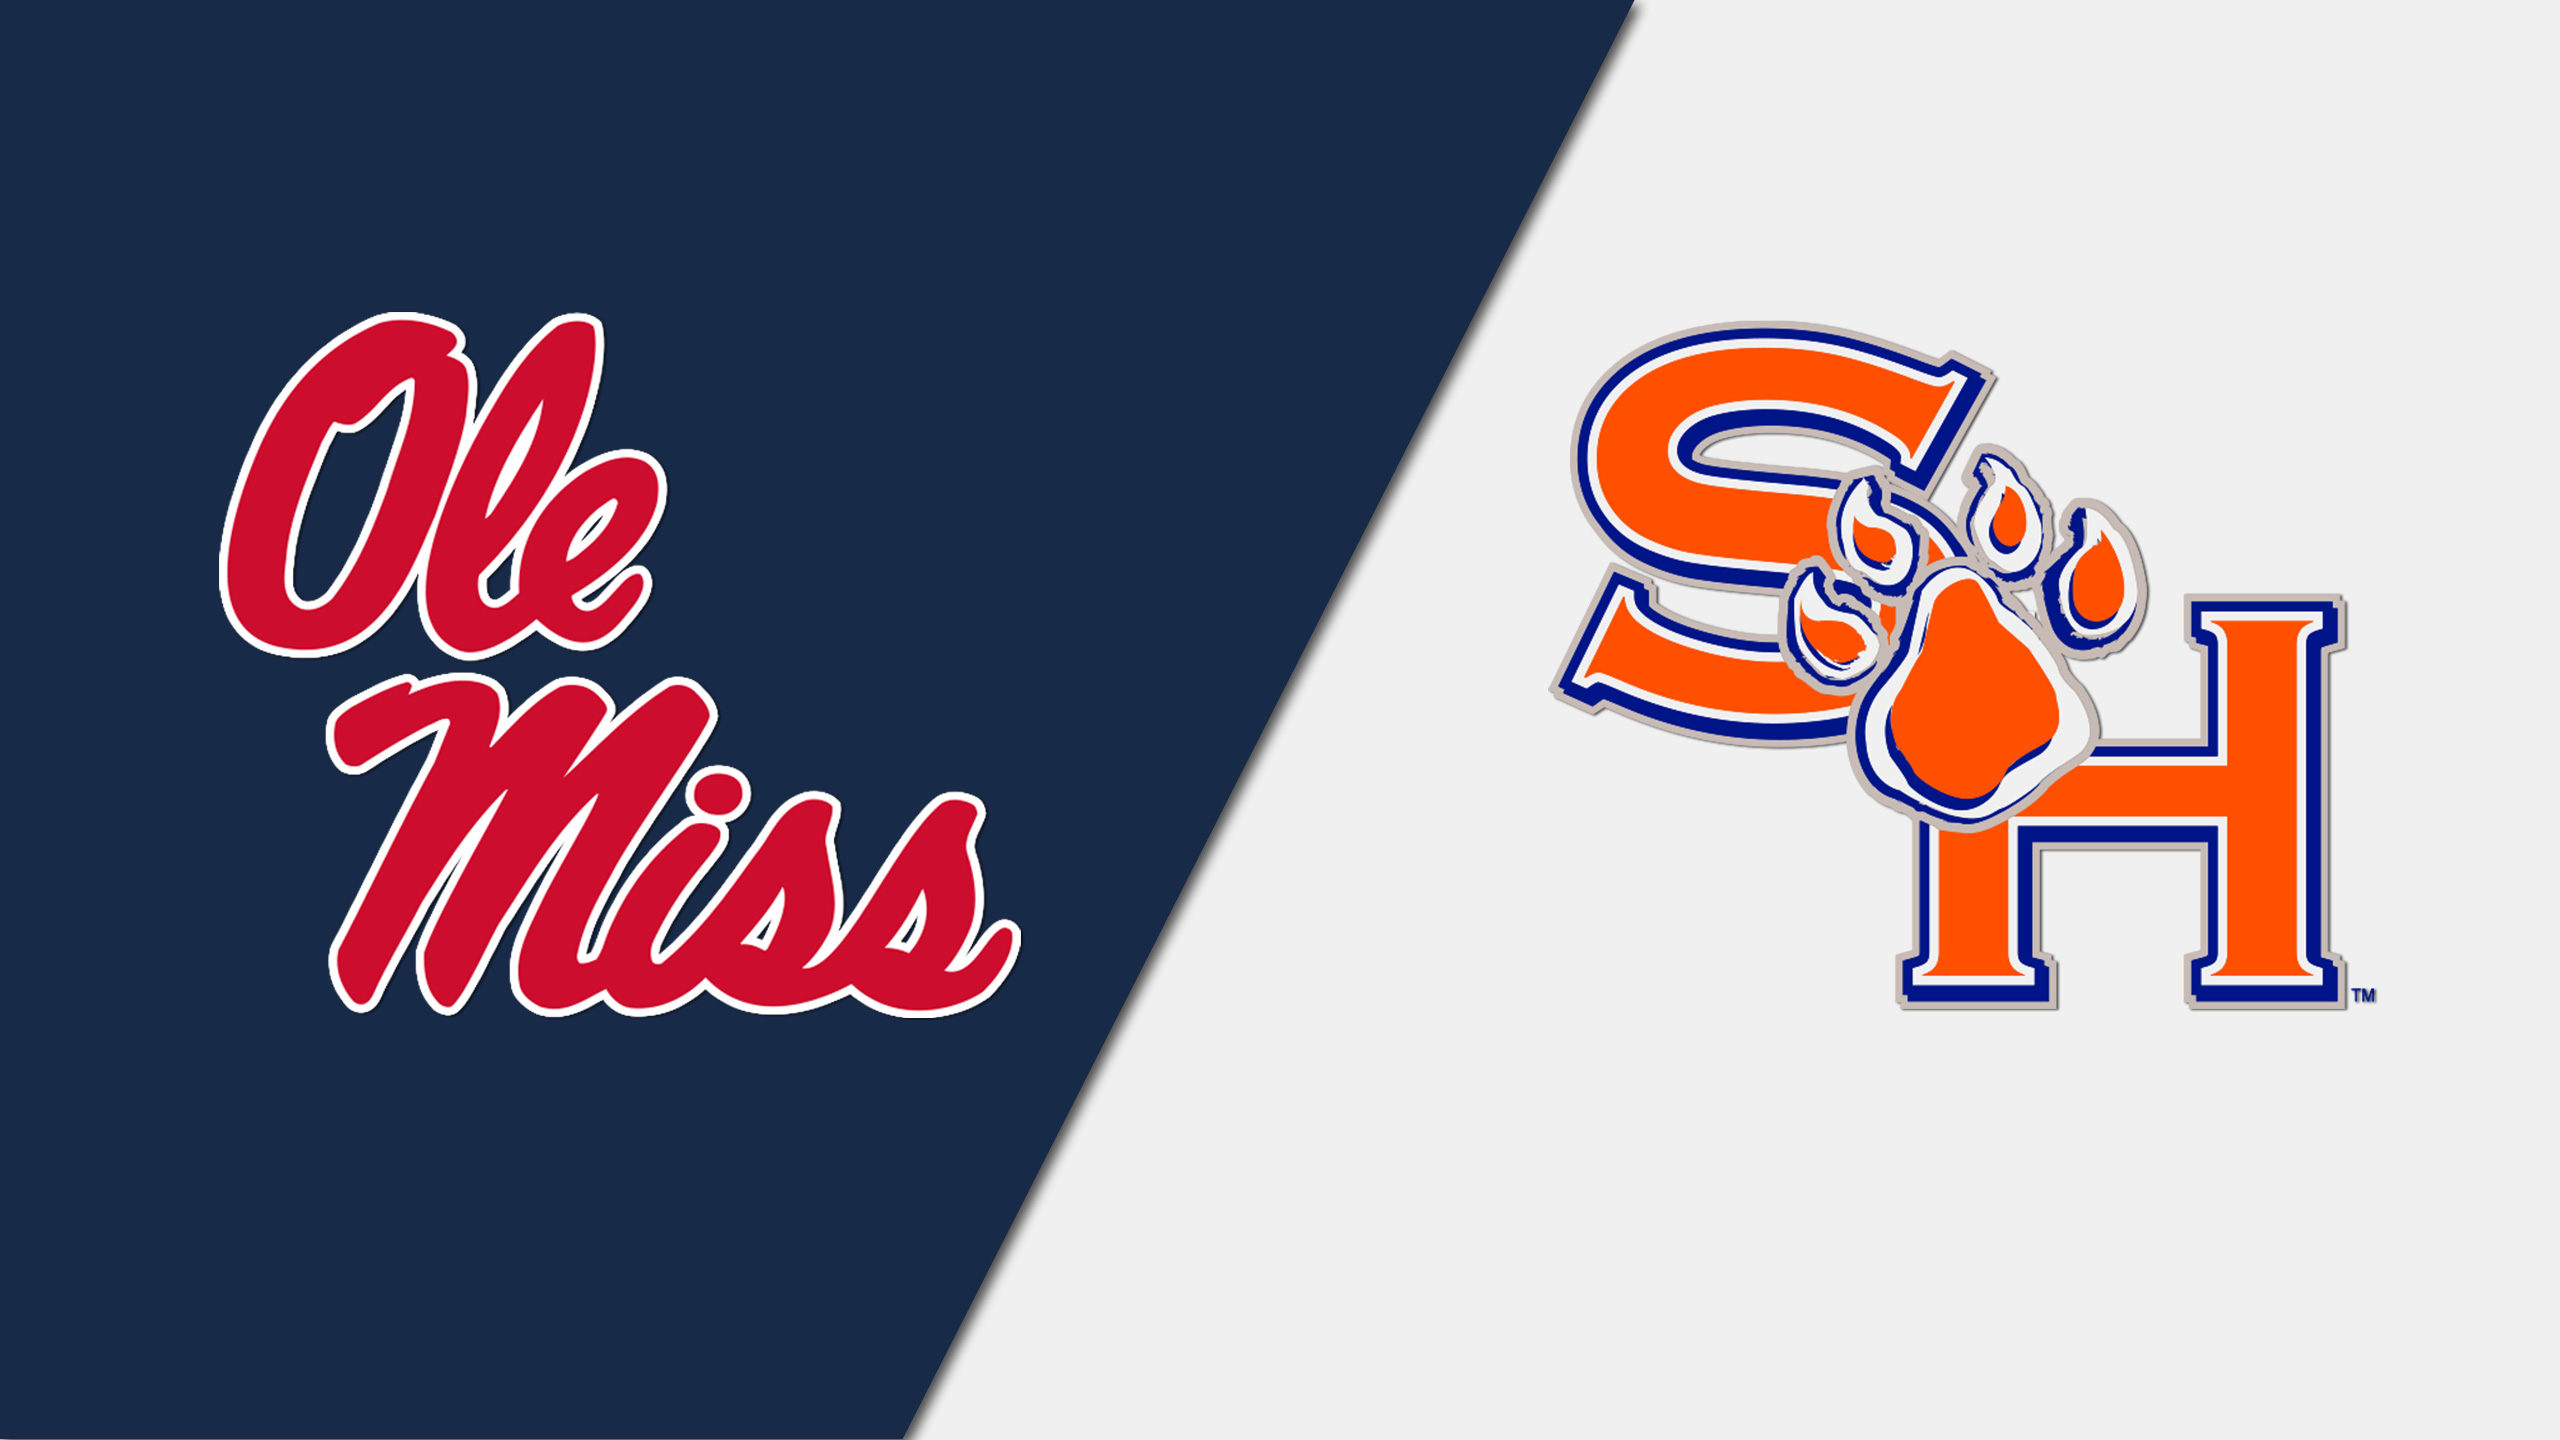 Ole Miss vs. Sam Houston State